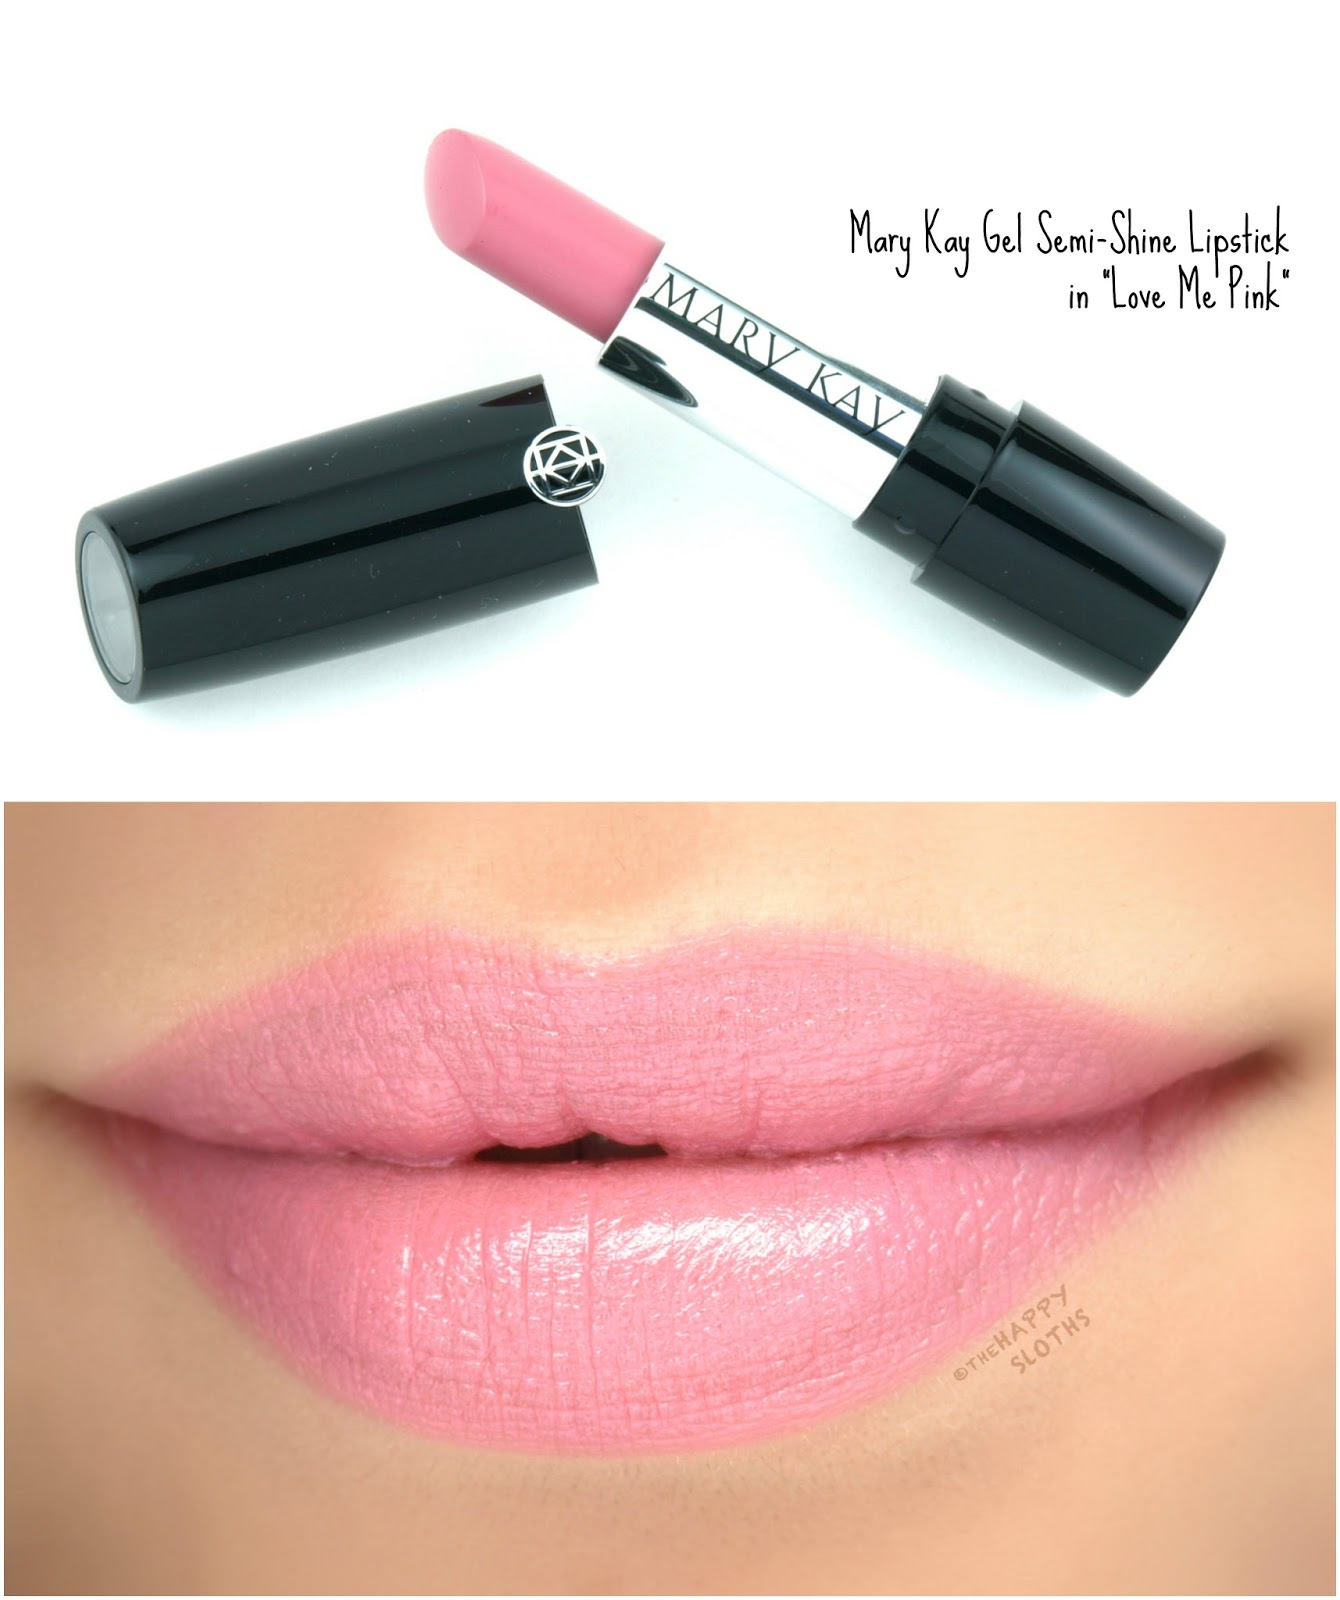 "Mary Kay Gel Semi-Shine Lipstick in ""Love Me Pink"": Review and Swatches"